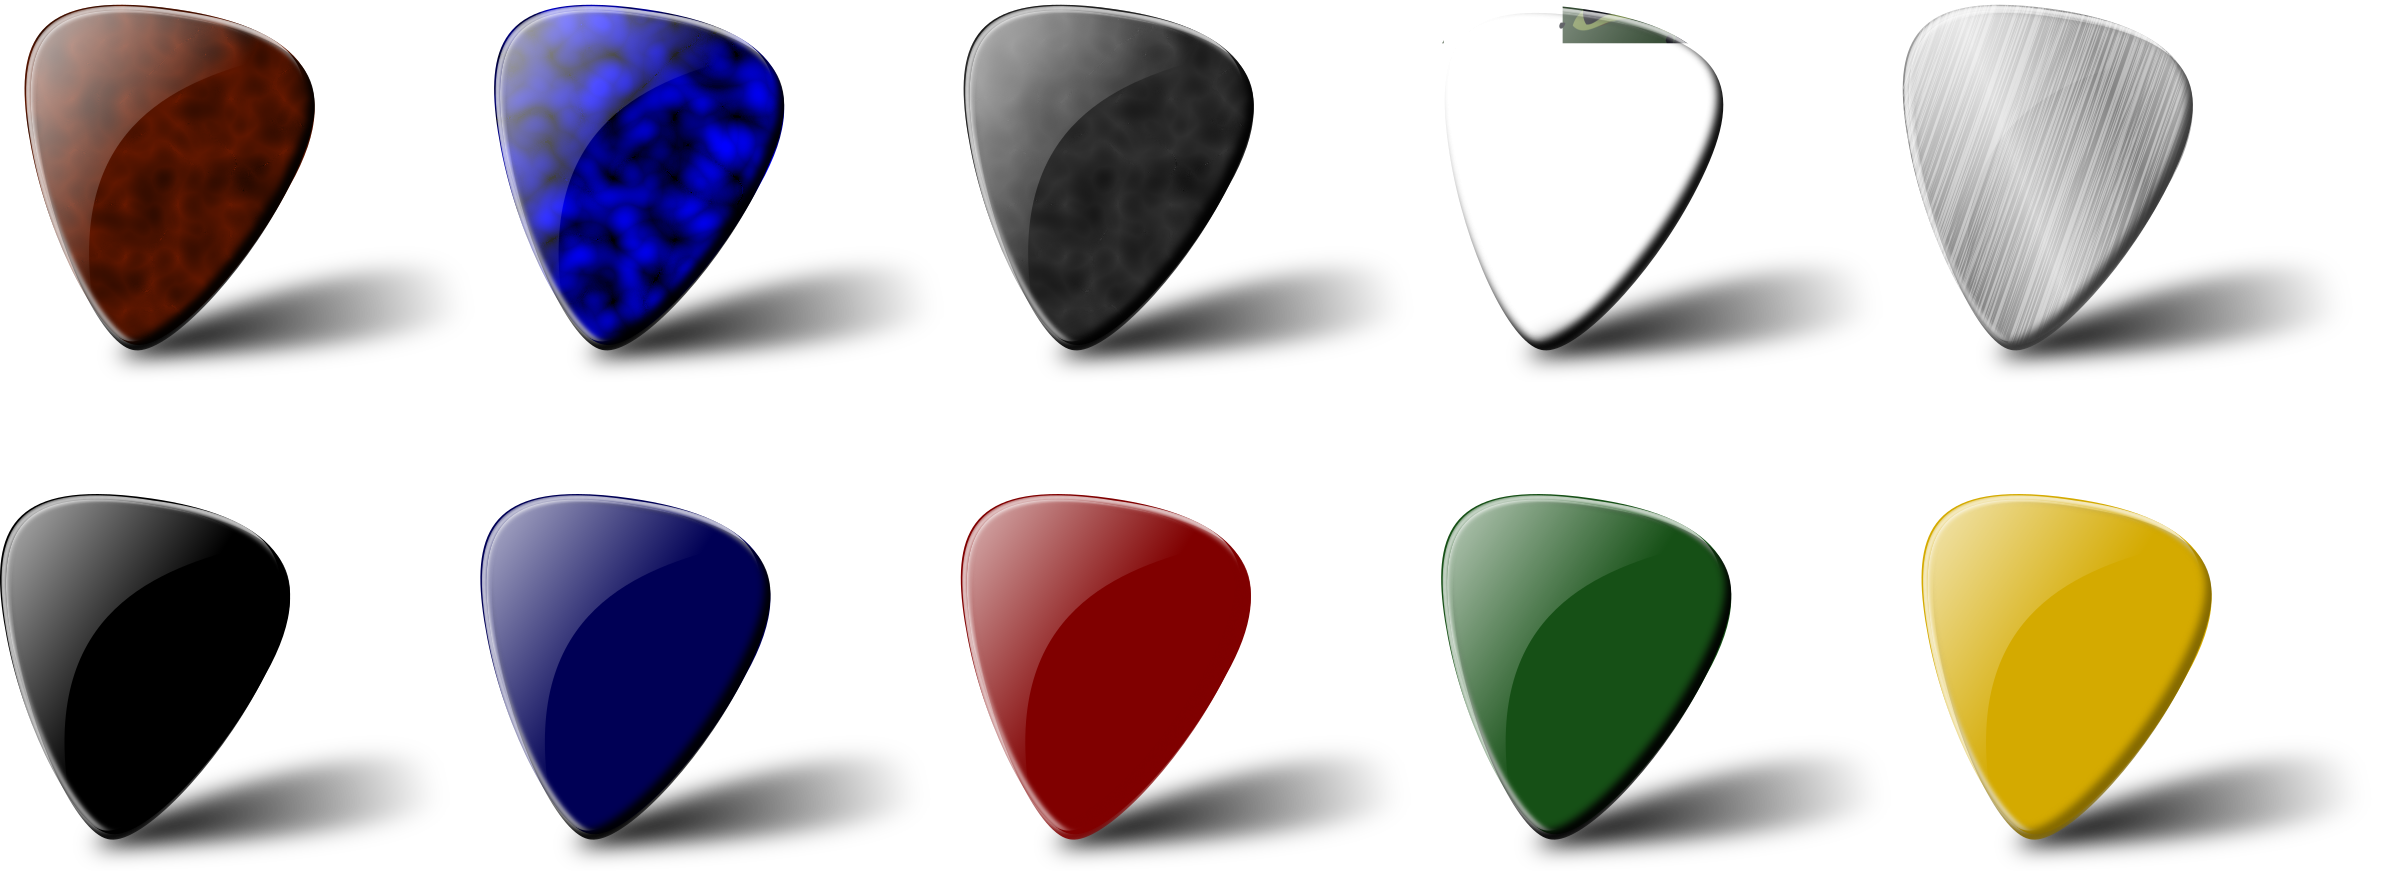 Guitar pick set by Chrisdesign